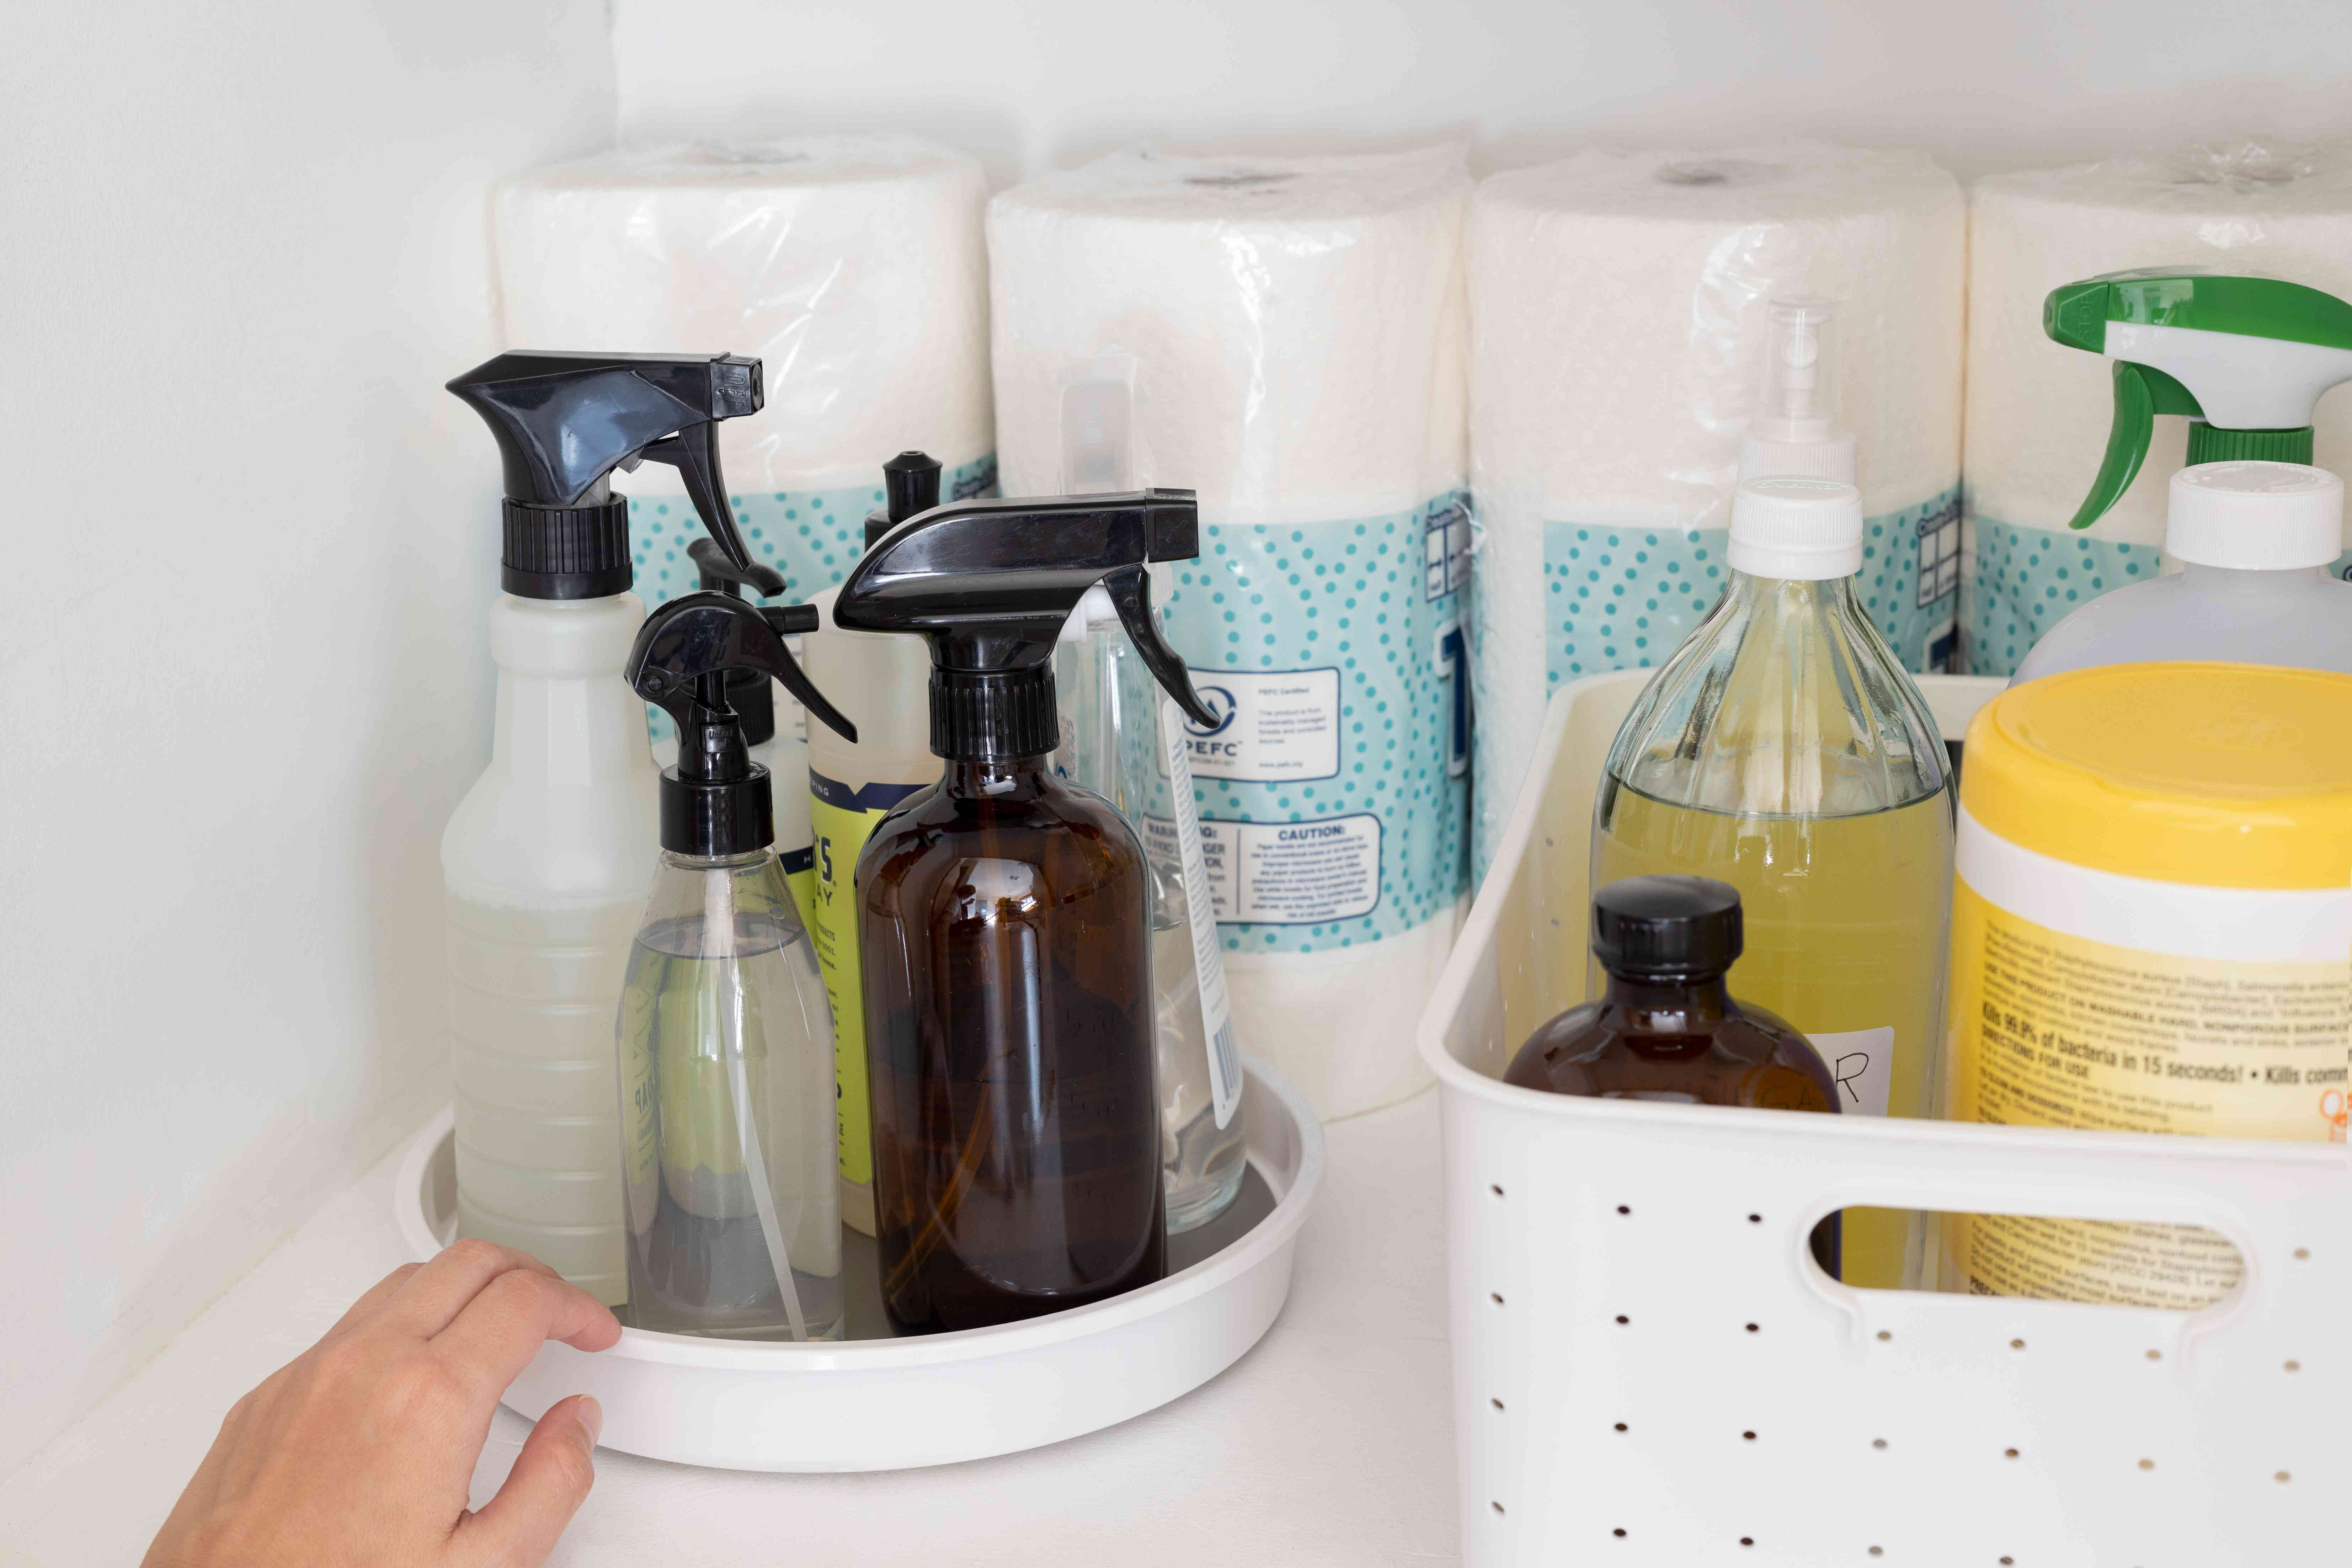 Lazy Susan turntable storing spray bottles for easier access